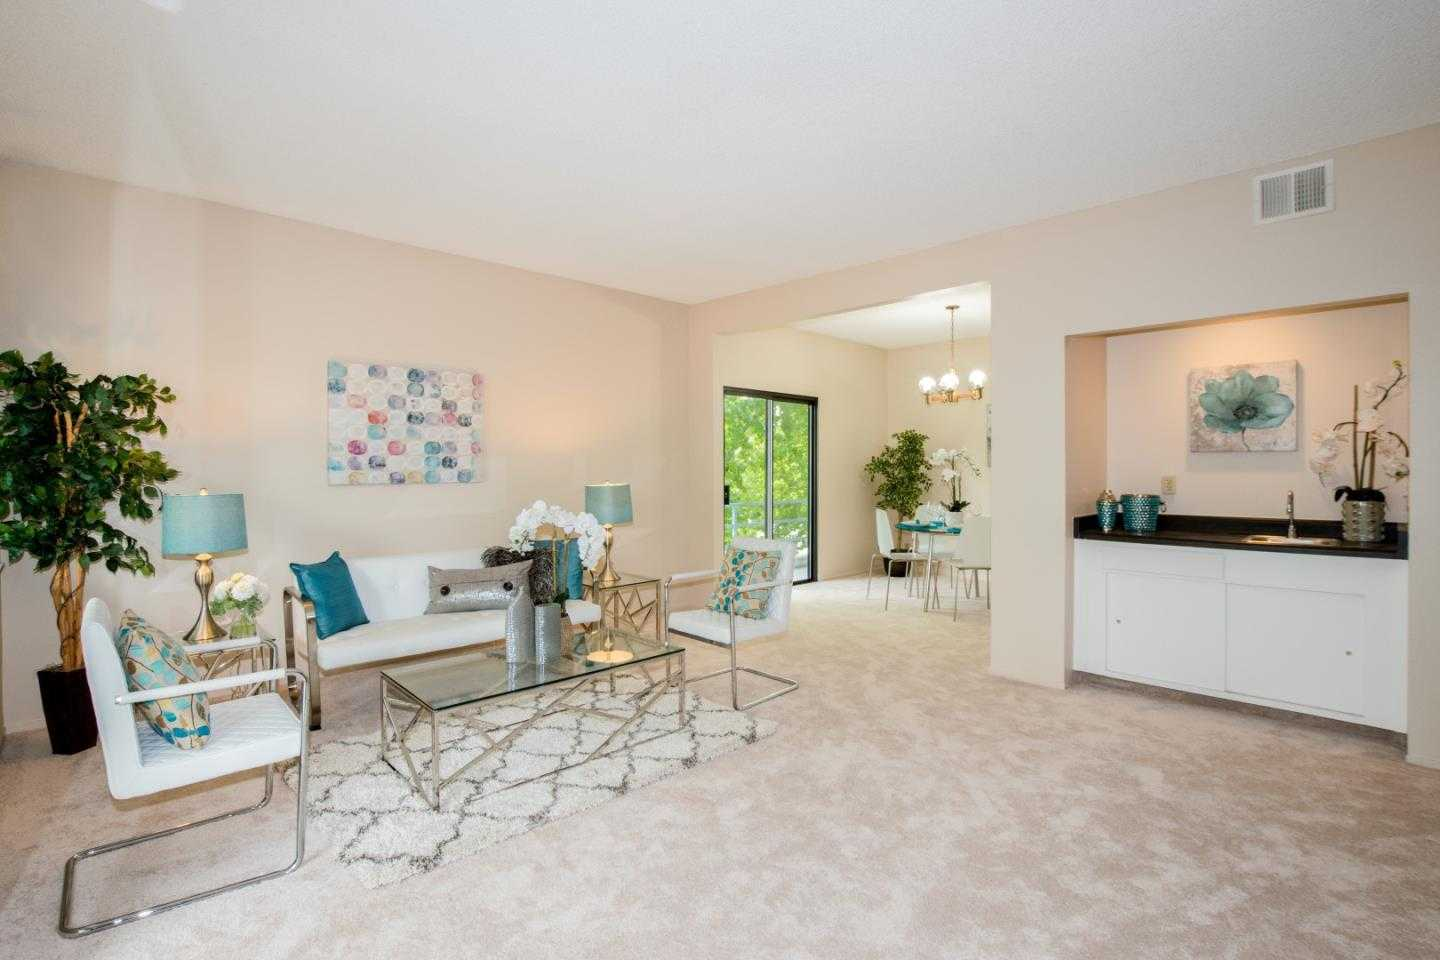 $850,000 - 2Br/2Ba -  for Sale in San Jose